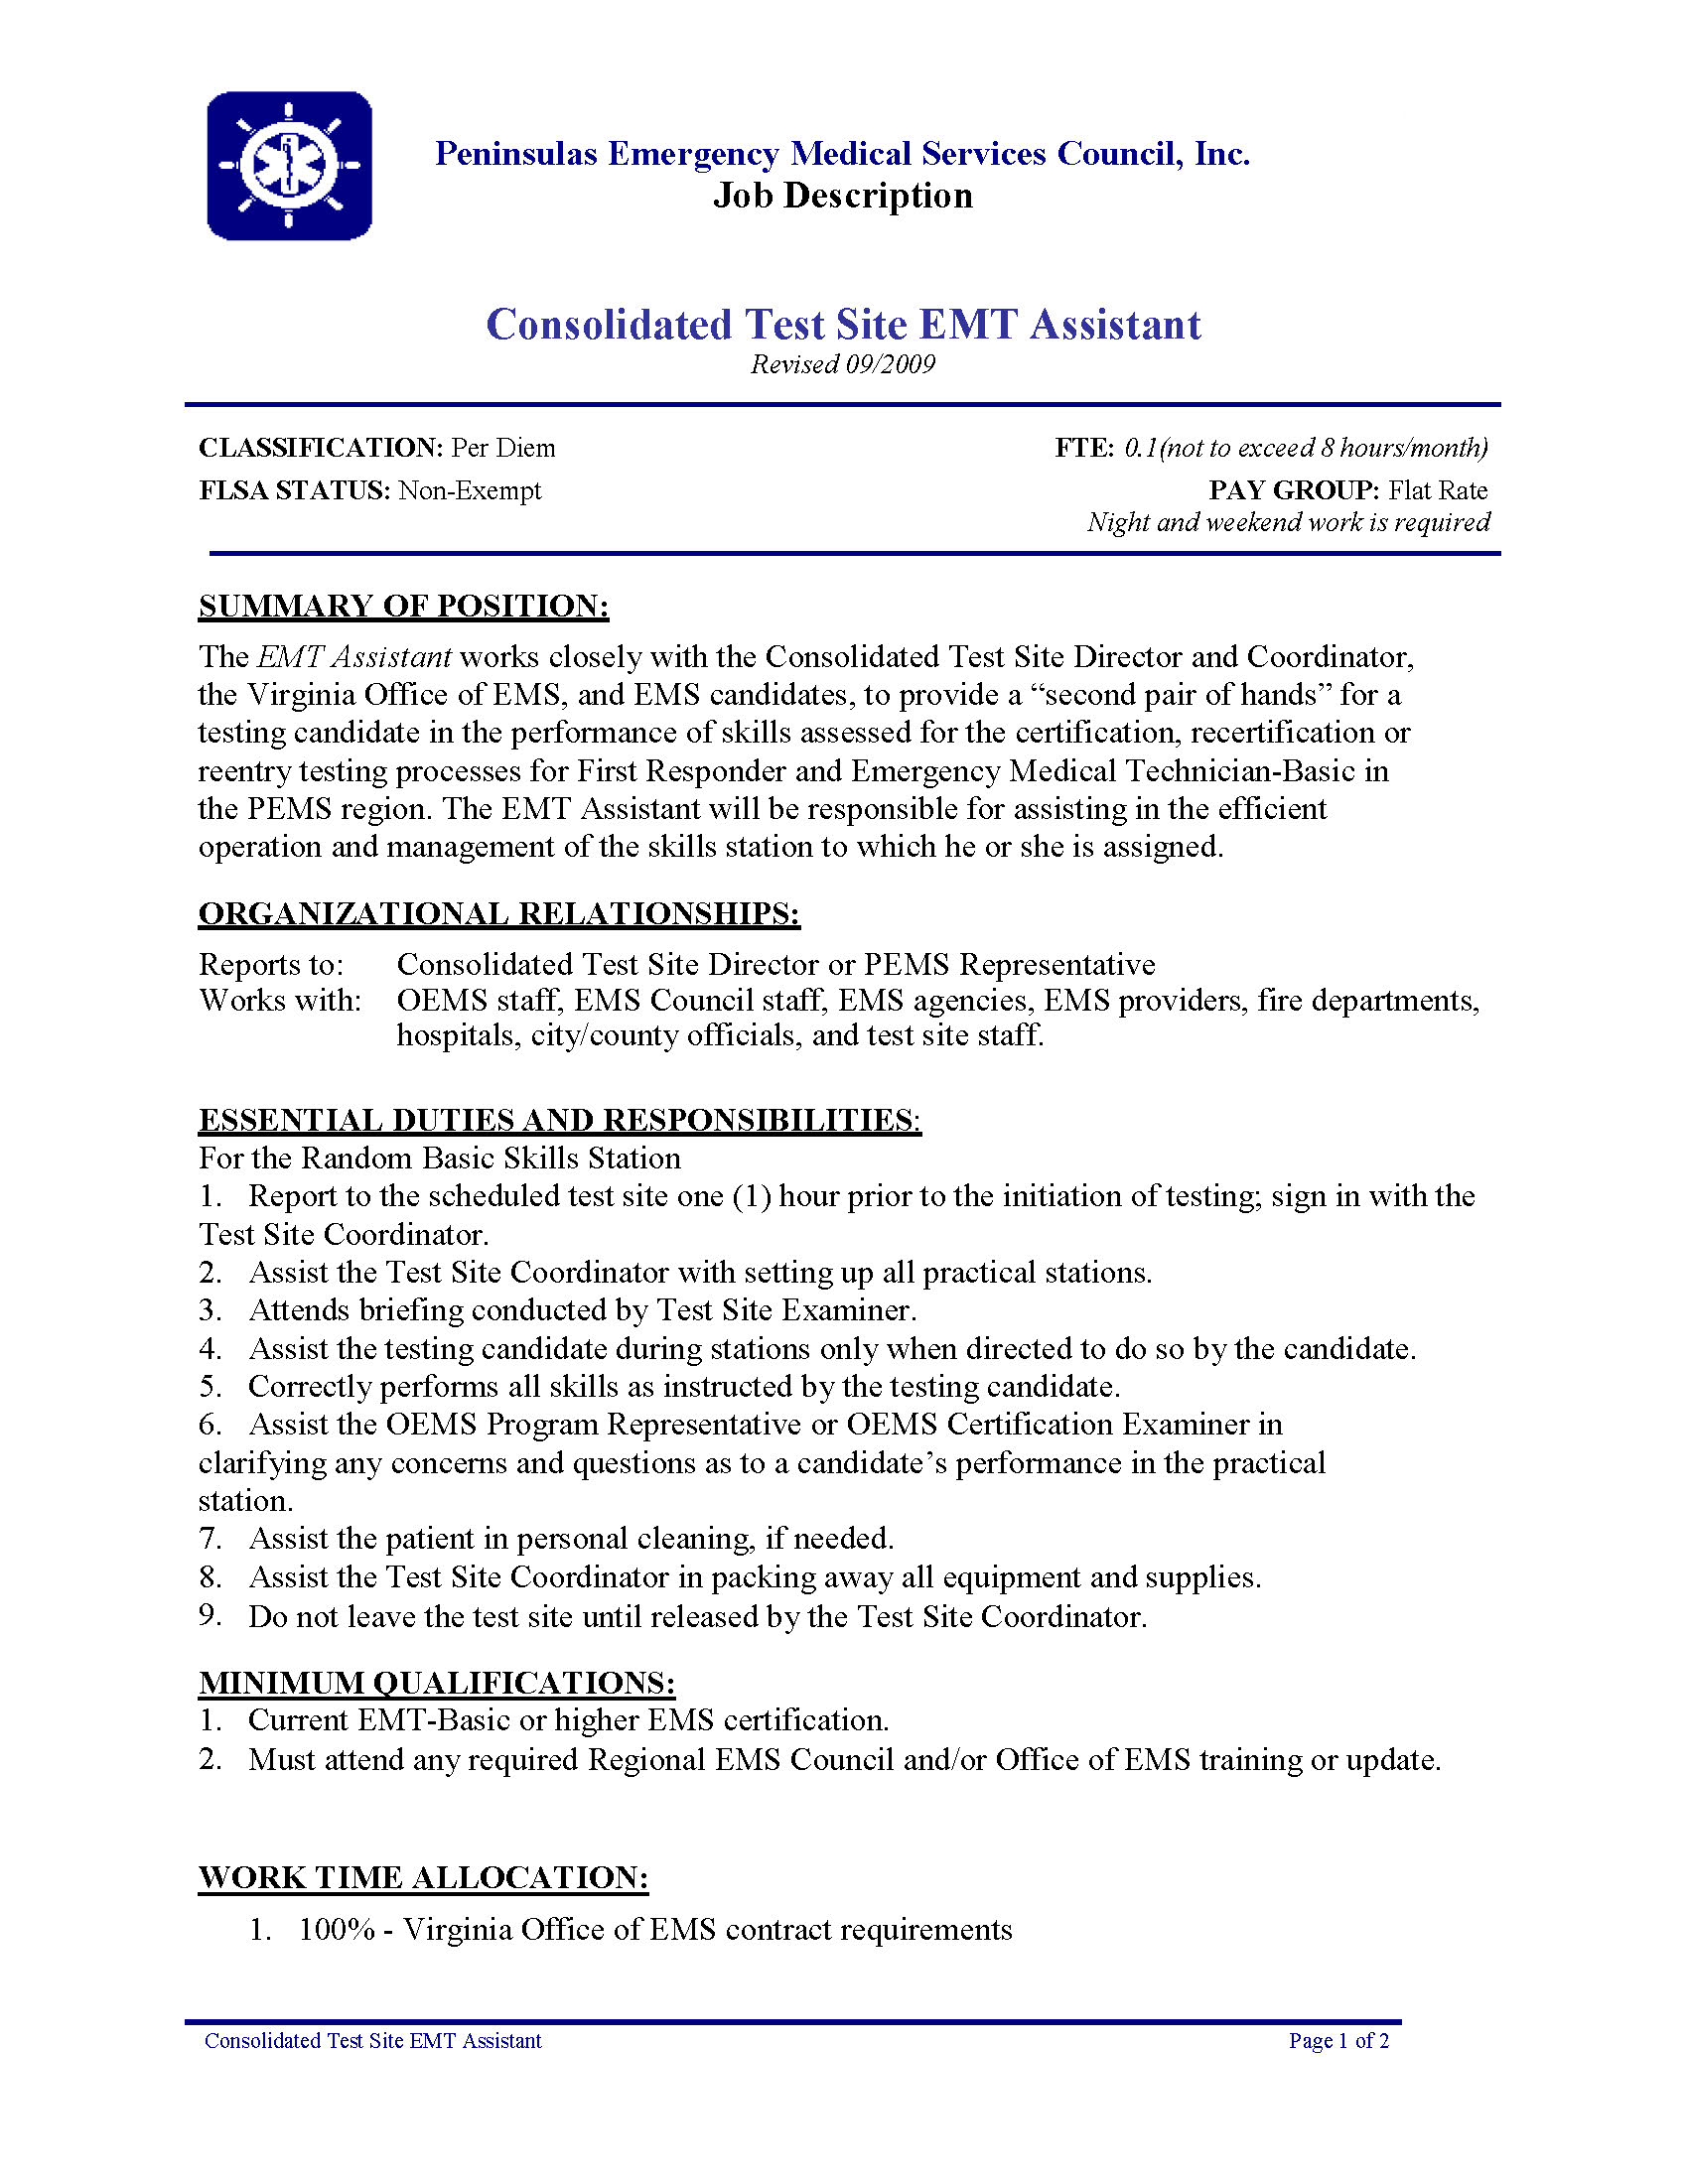 05-010 Pems Cts - Consolidated Test Site Emt Assstant (9-09)